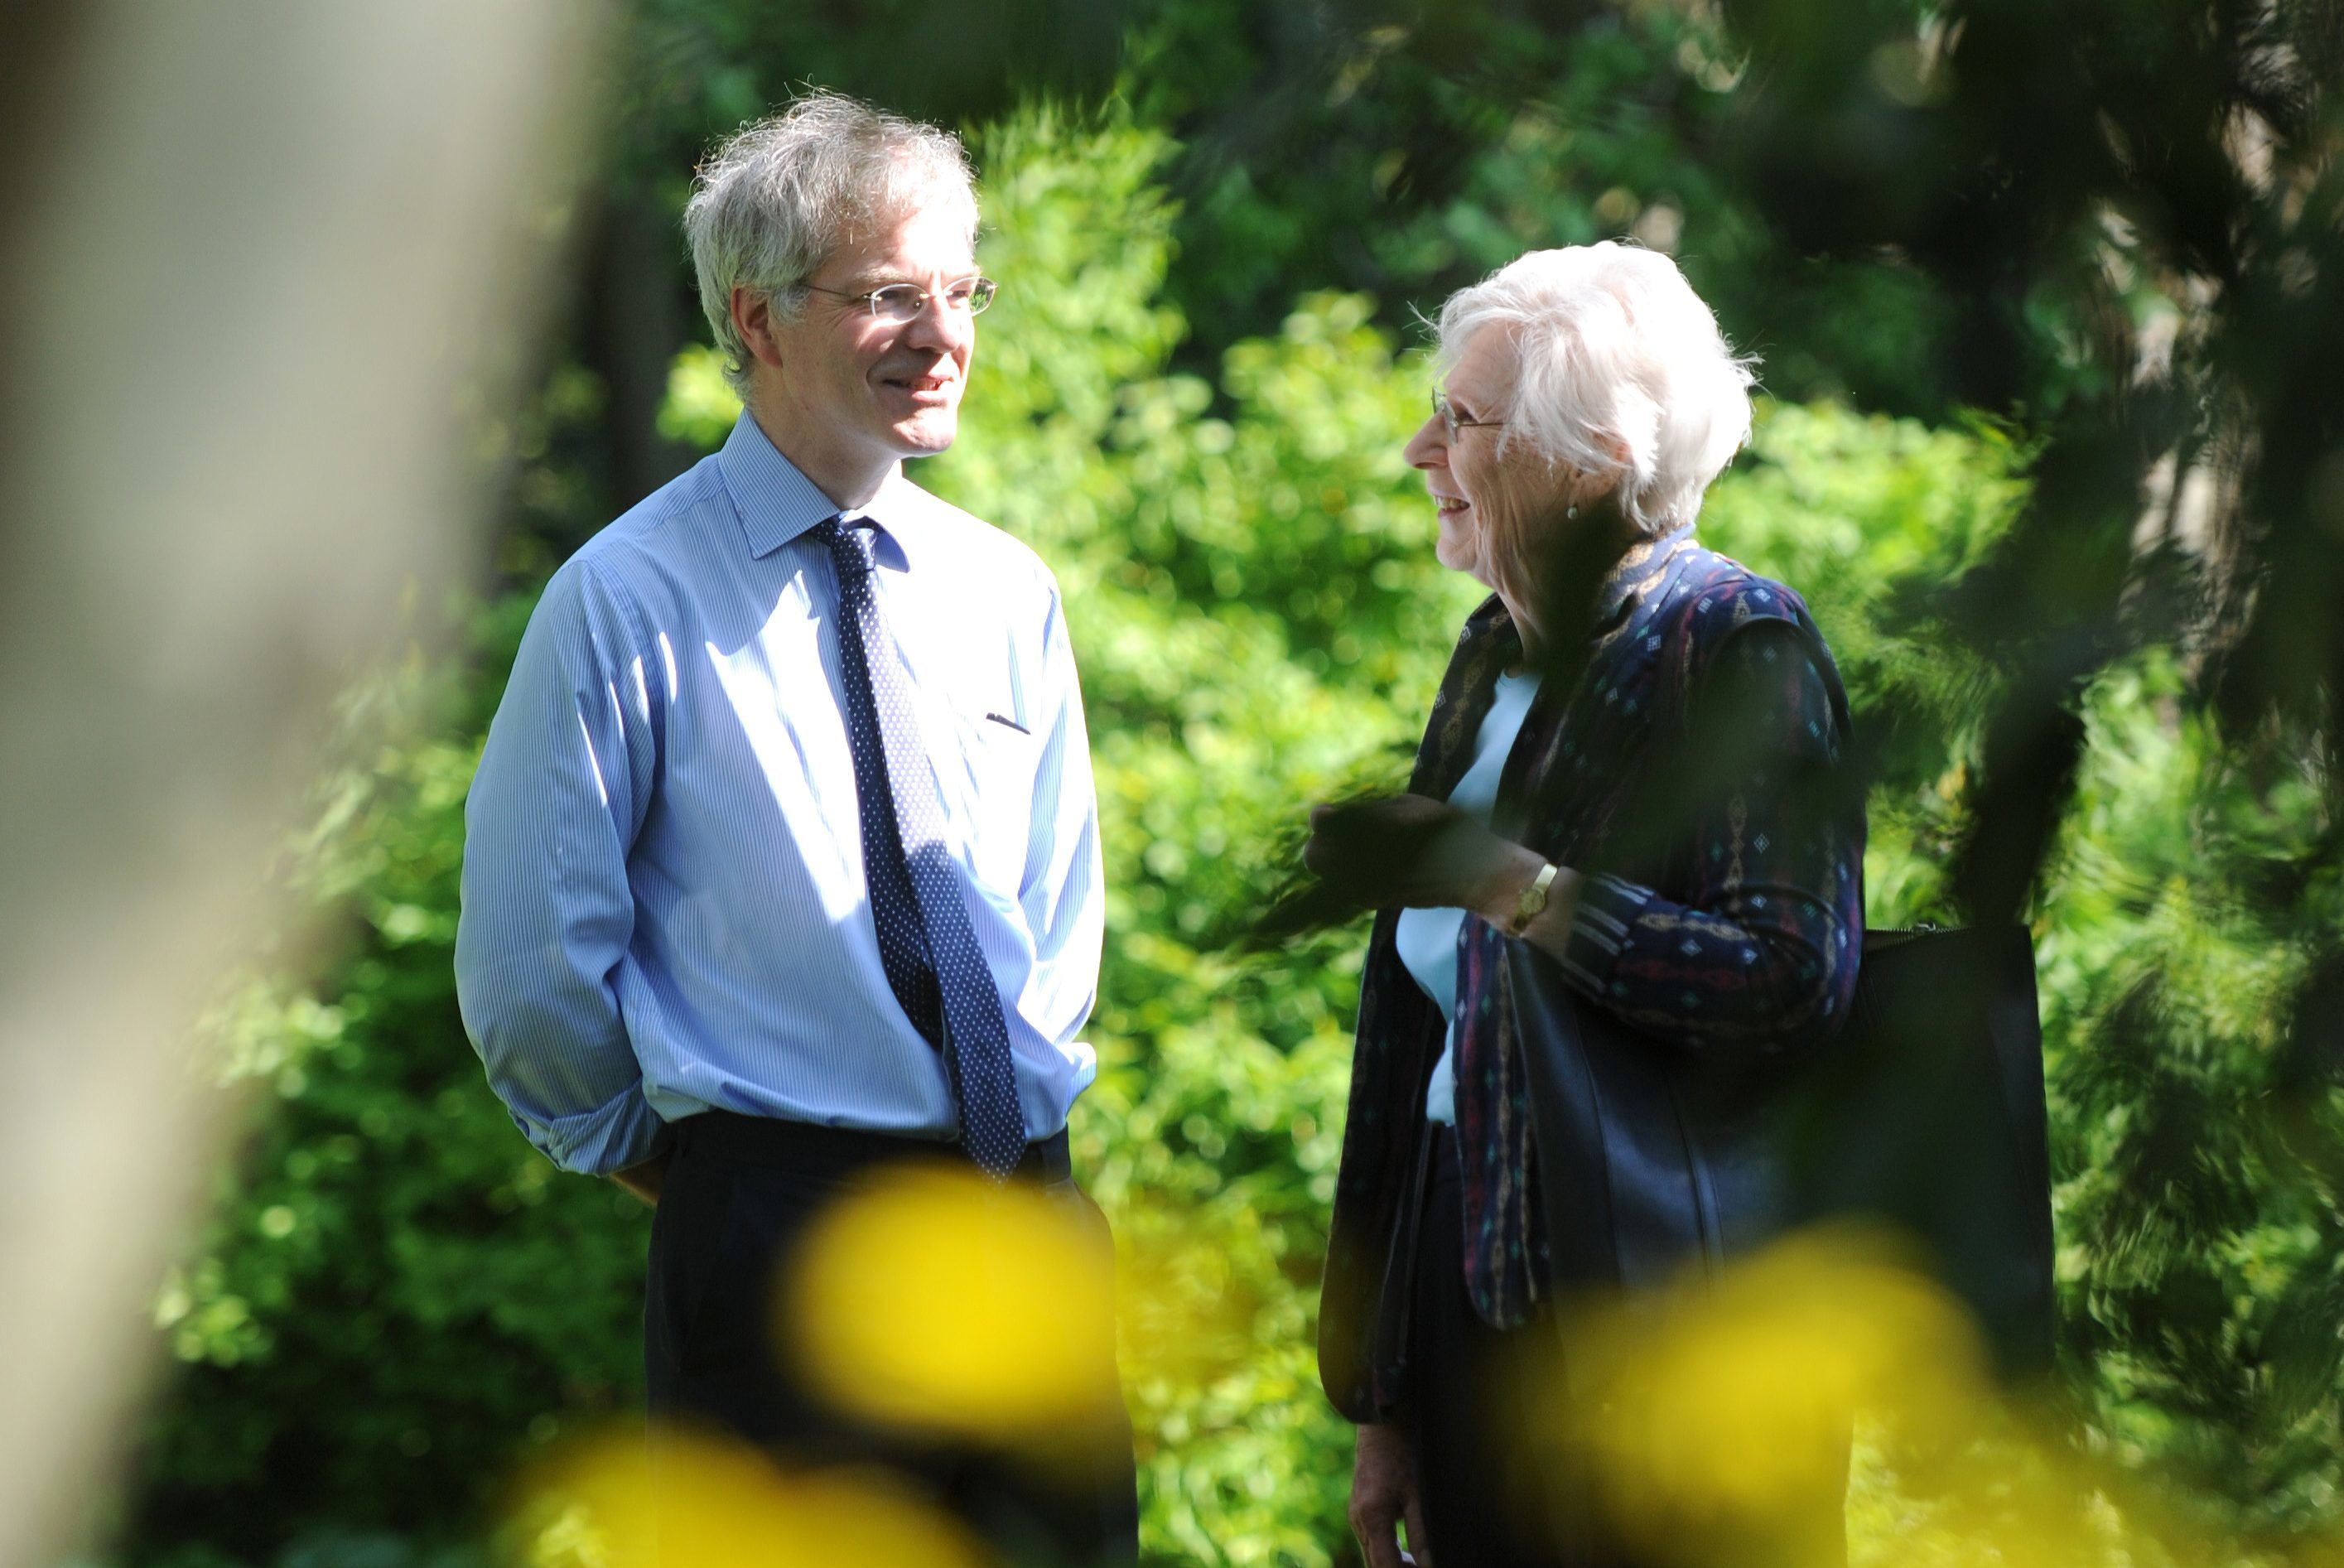 Friends of the garden Mark McGilchrist and Tricia Paton search for inspiration